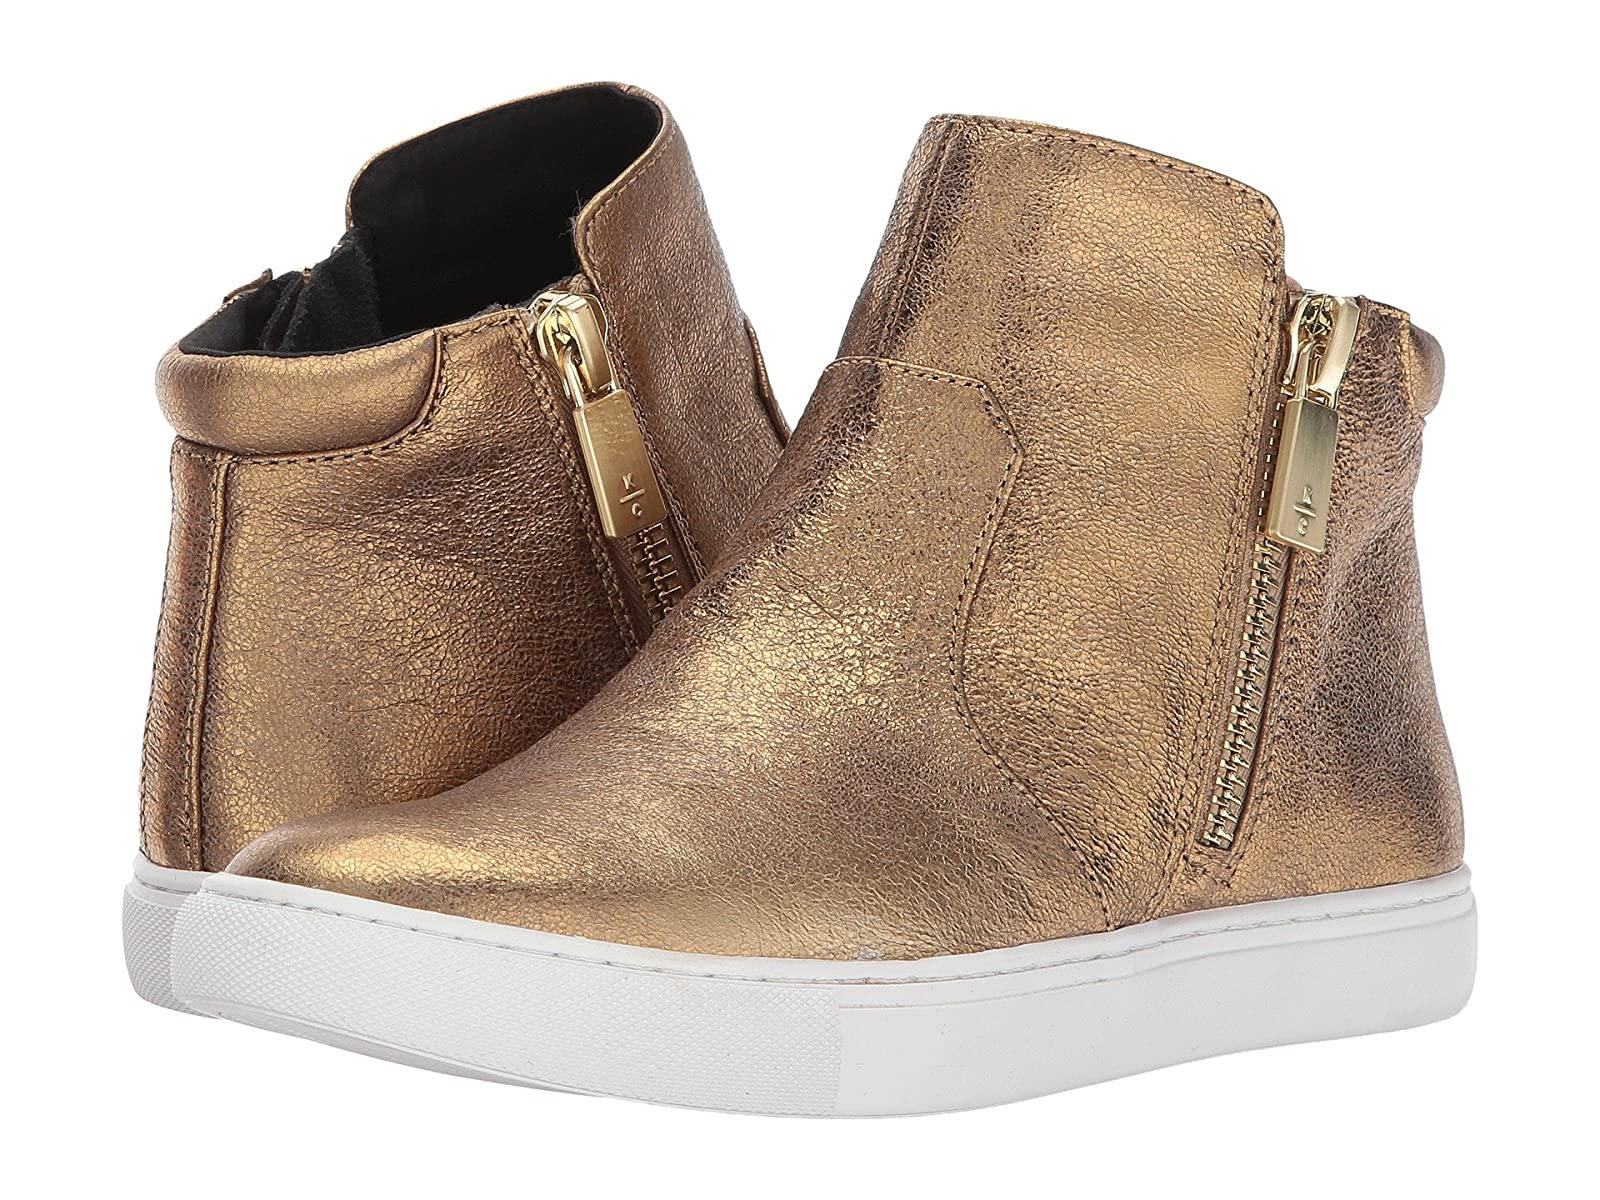 Kenneth Cole New York KieraCheap and distinctive eye-catching shoes